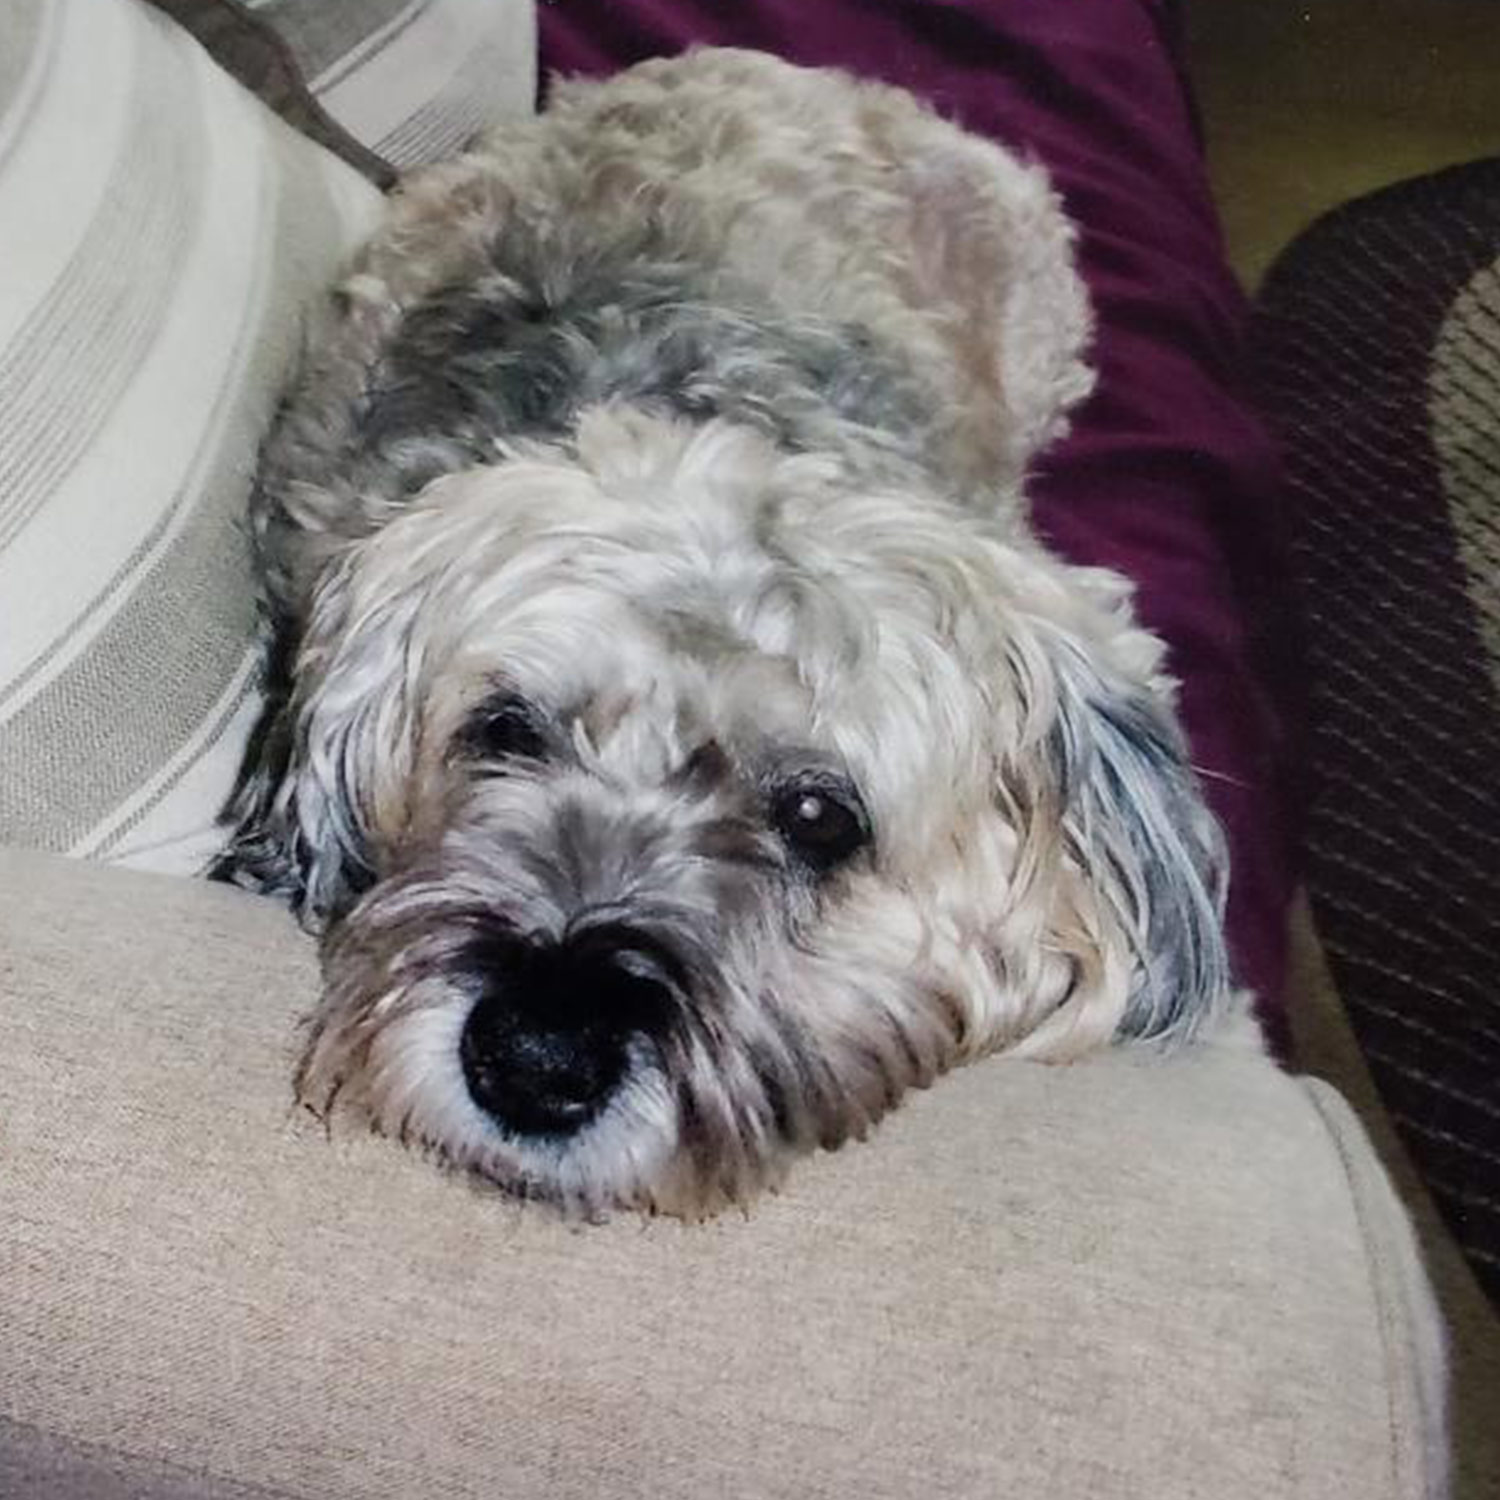 Marilyn M. in Manchester, NH sent a picture of her Chloe relaxing on the couch.